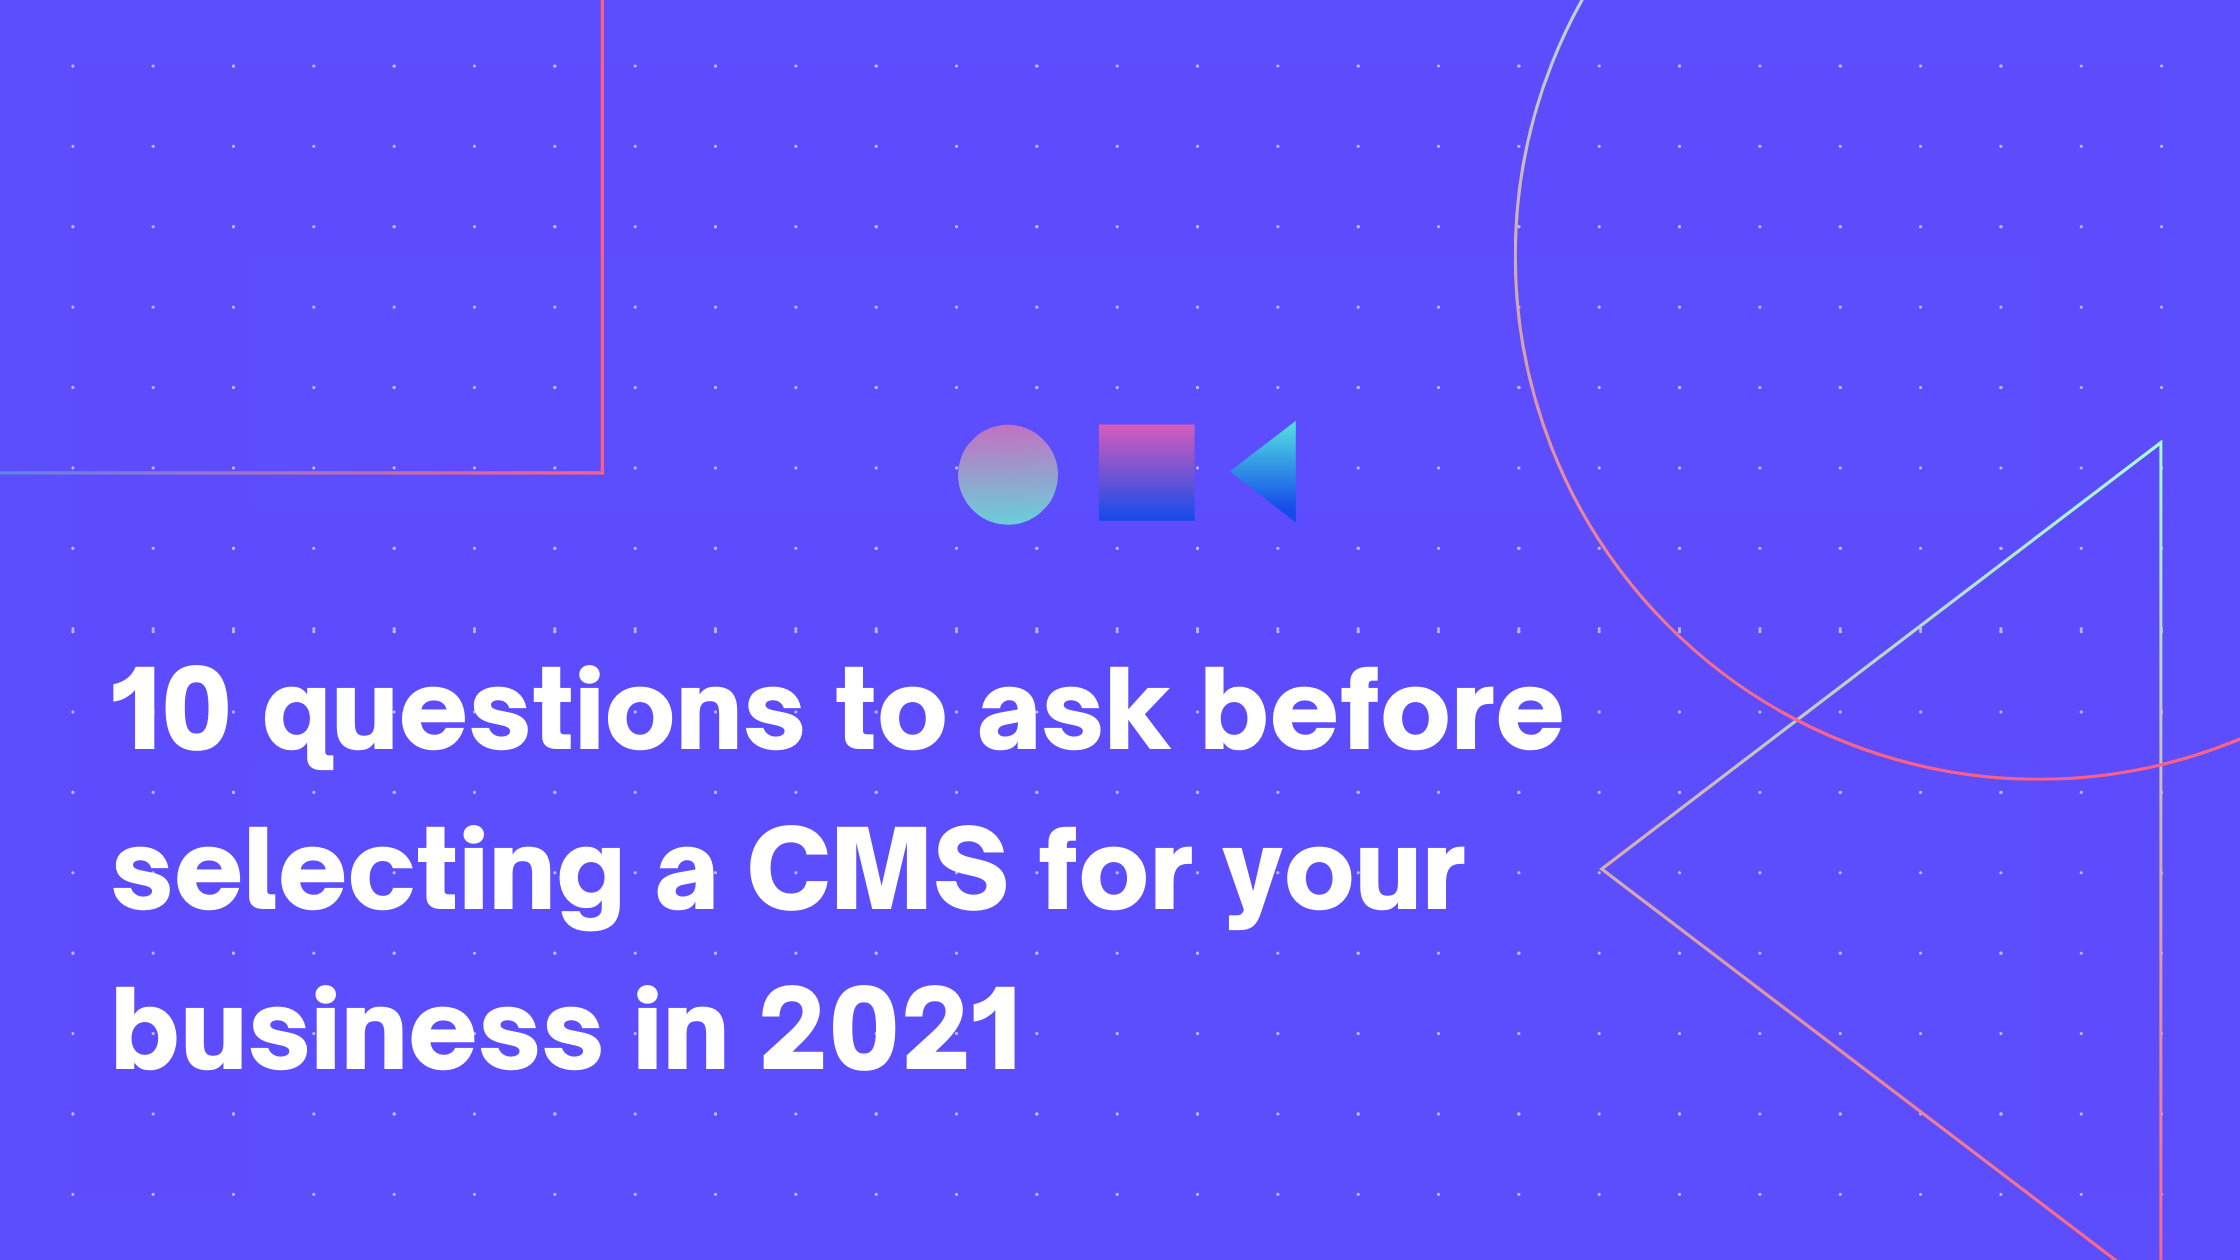 10 questions to ask before selecting a CMS for your business in 2021